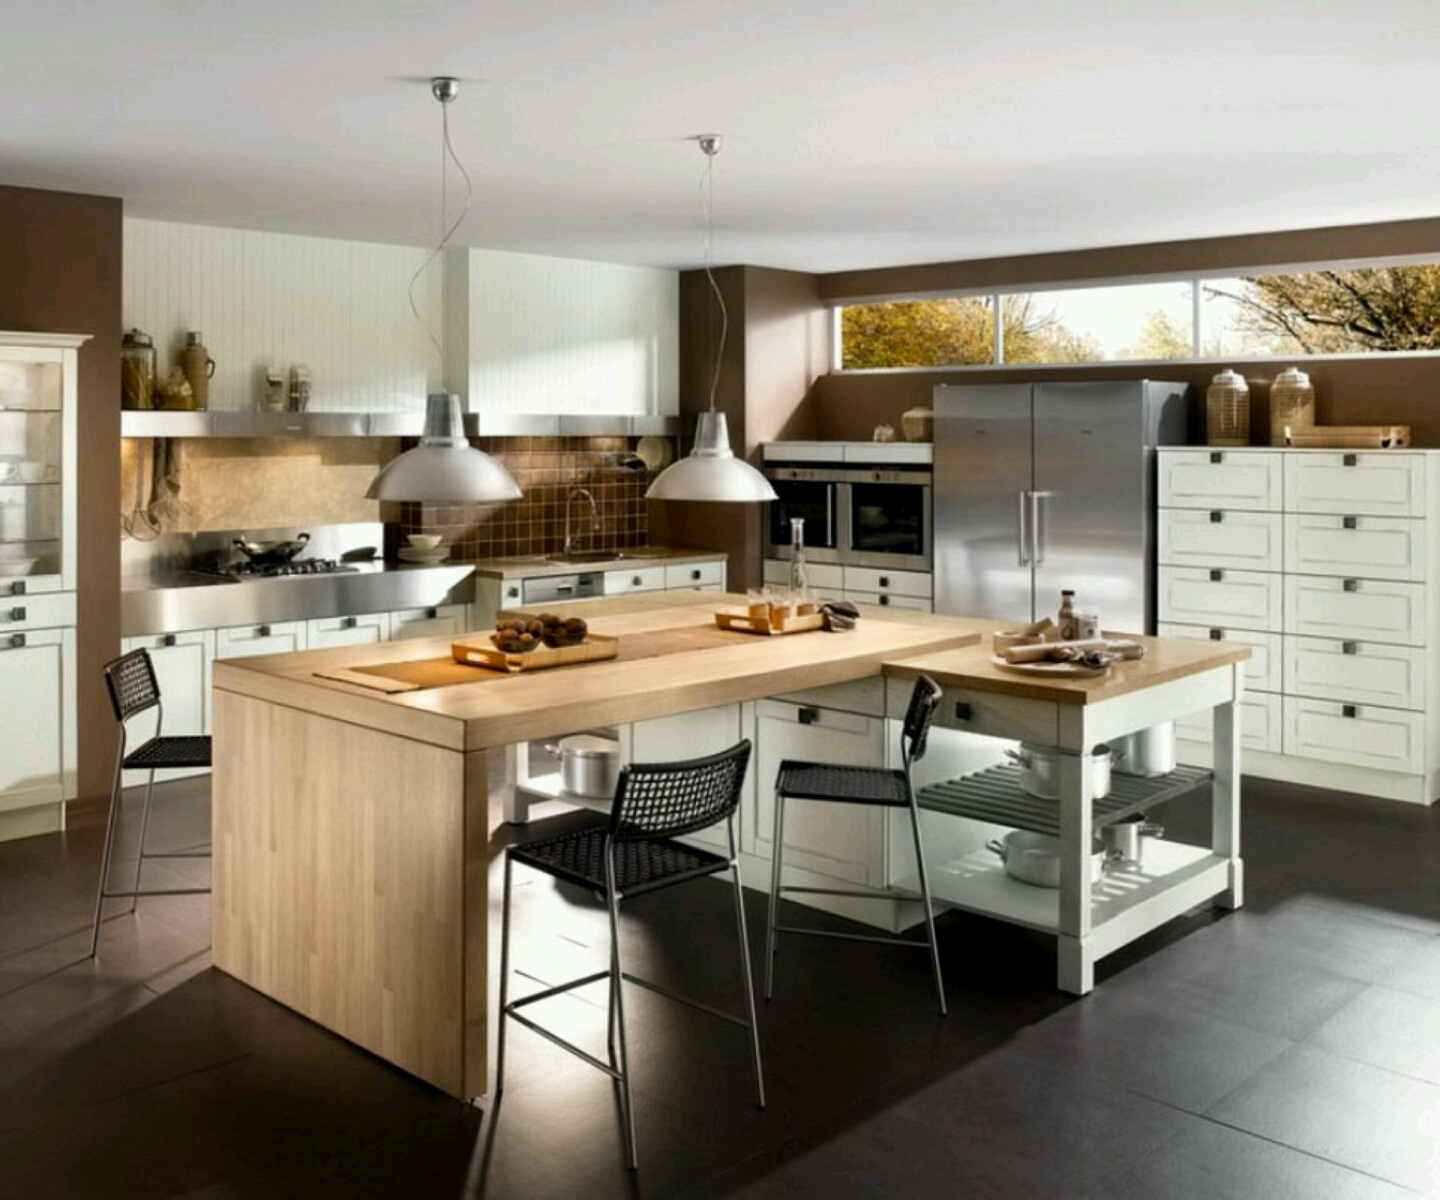 Free Download Modern Kitchen Designs Ideas Nteresting Wallpapers Pictures 1440x1200 For Your Desktop Mobile Tablet Explore 41 Modern Kitchen Wallpaper Ideas Discount Wallpaper Country Kitchen Wallpaper Country Kitchen Wallpaper Designs